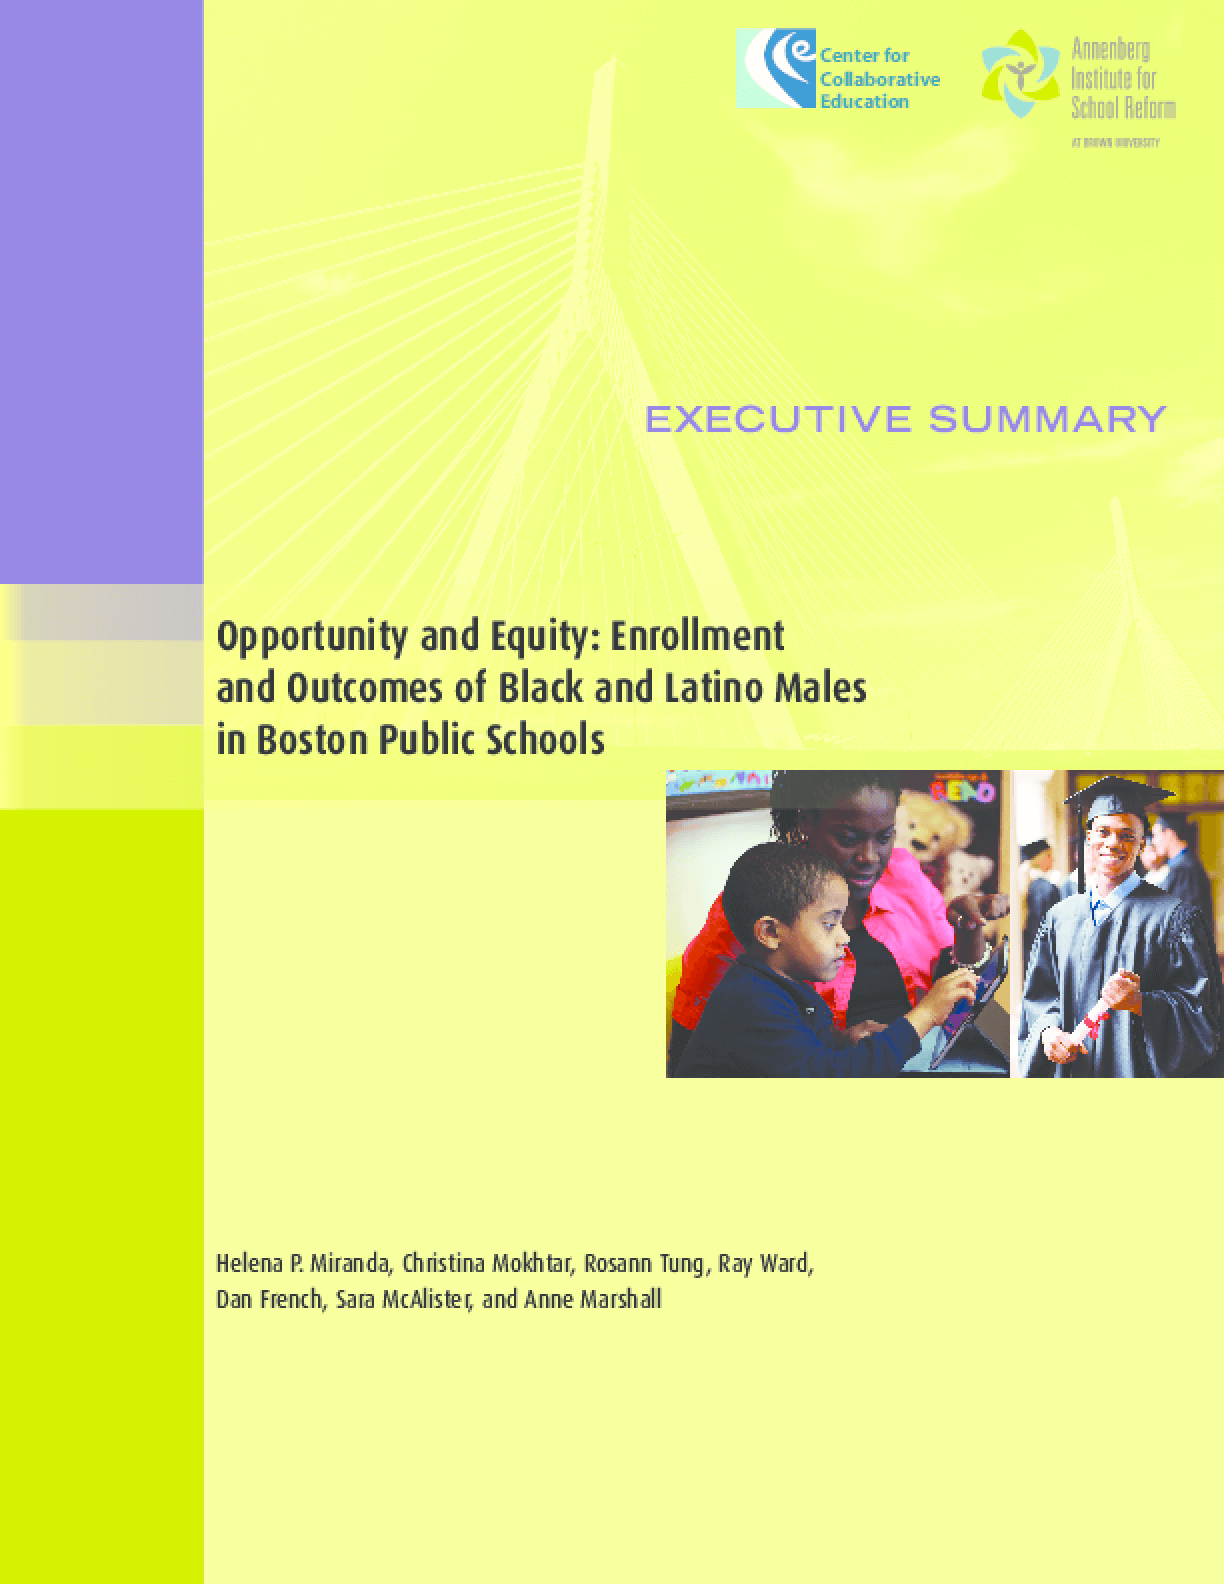 Opportunity and Equity: Enrollment and Outcomes of Black and Latino Males in Boston Public Schools